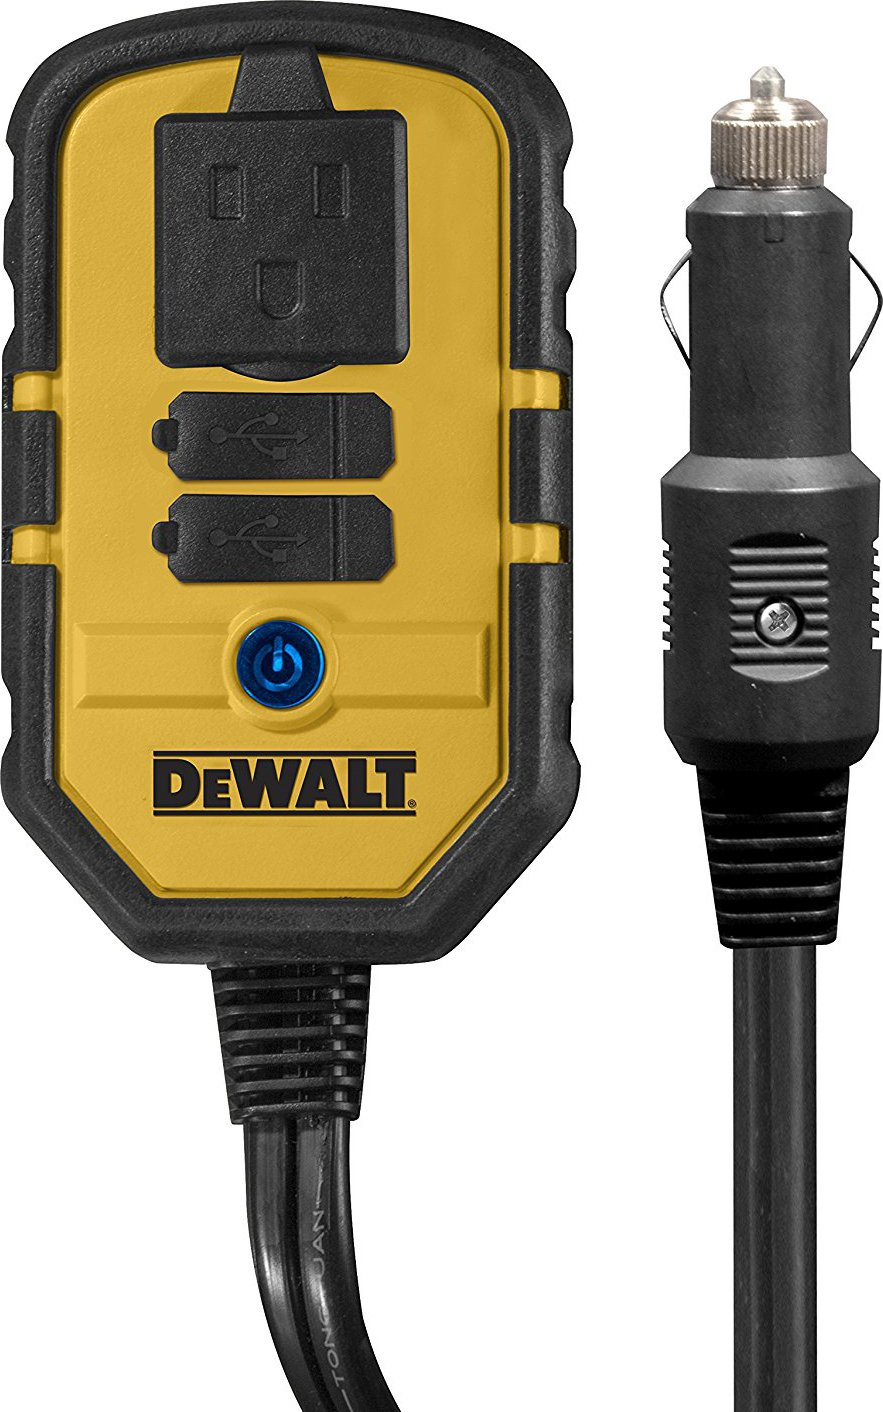 DEWALT DXAEPI140 140W Power Inverter: 12V DC to 120V AC Power Outlet Dual USB Ports